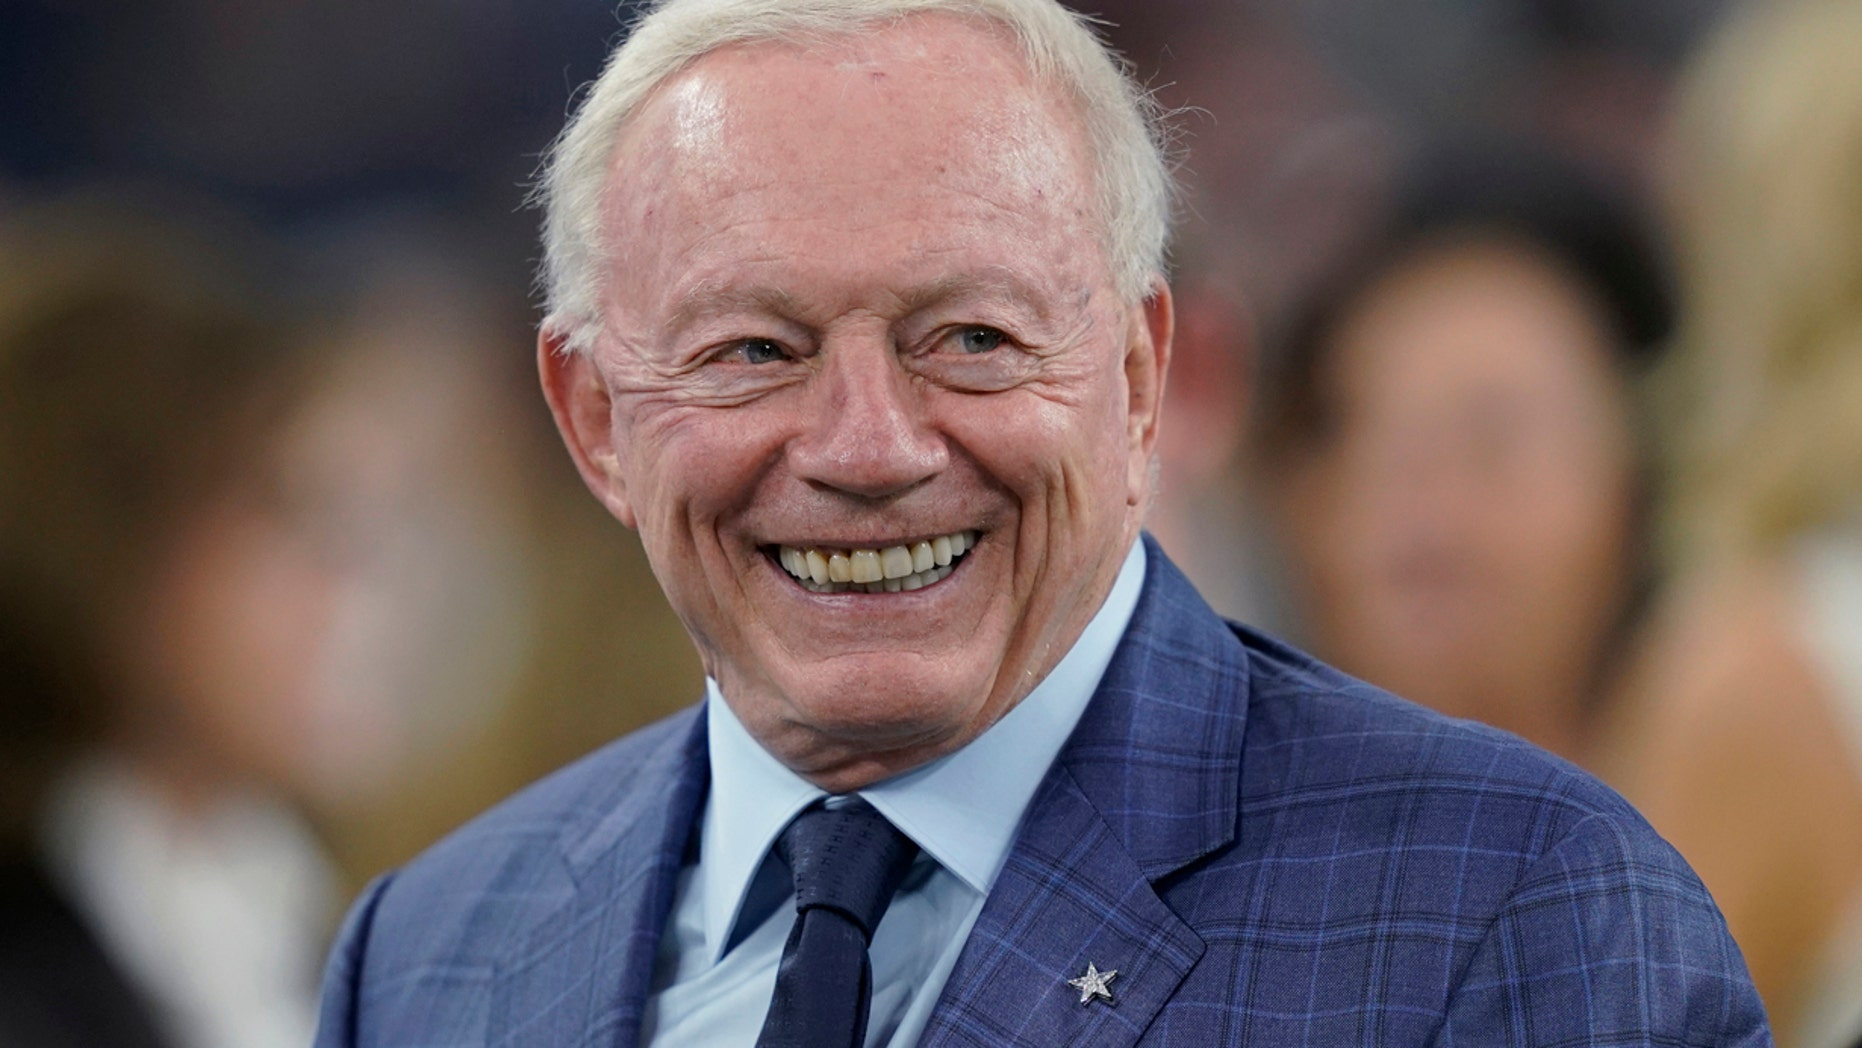 FILE 2018: Dallas Cowboys owner Jerry Jones smiles before the team's NFL football game against the Houston Texans in Houston.